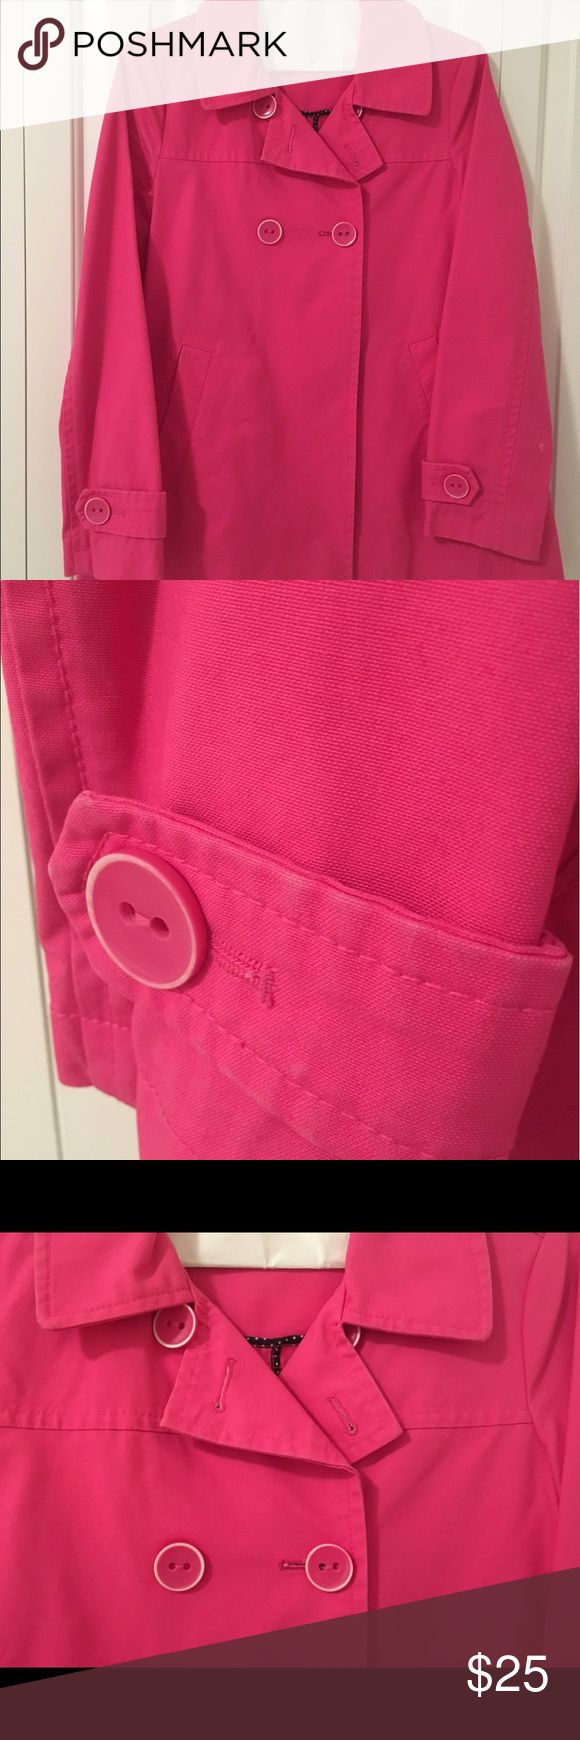 Pink Gap jacket Size medium Gap Jacket.  It is pink.  One button is missing off sleeve but there is a replacement button inside.   Please look at all pictures before bidding.  This is a cute jacket for Spring. It is machine washable and is 100% cotton. GAP Jackets & Coats